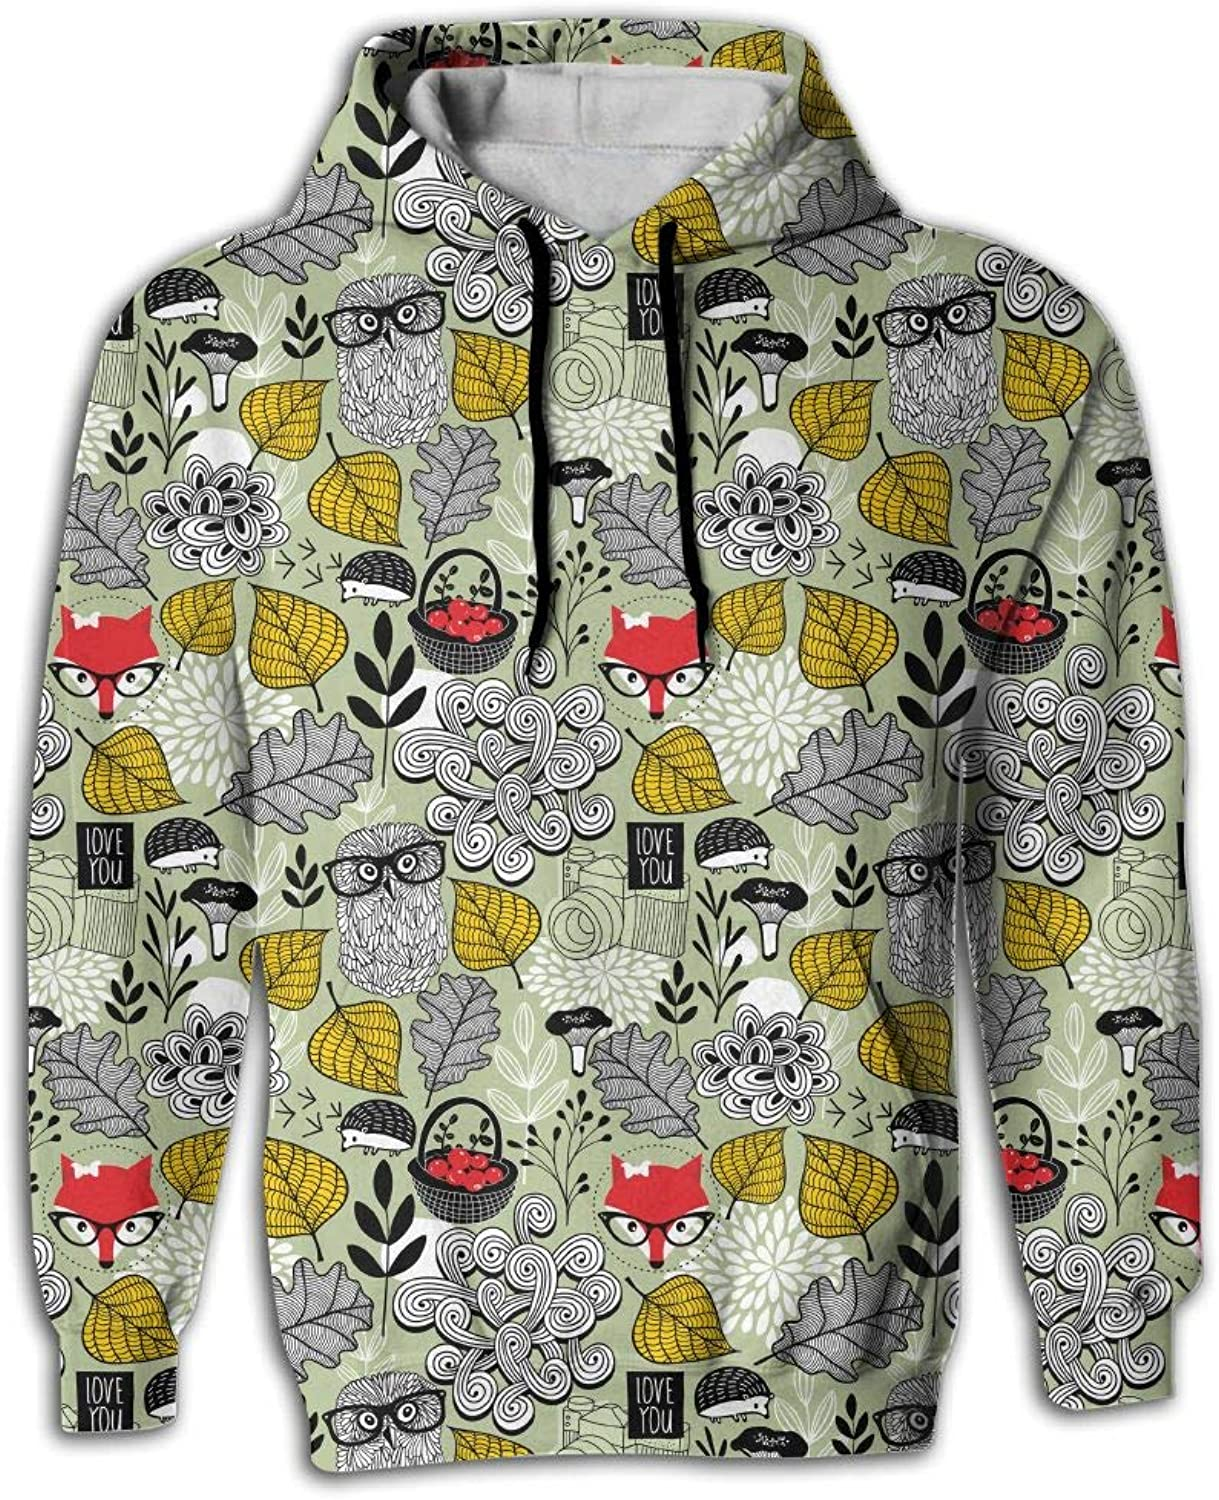 Wkylt Best Big Pockets Lightweight Forest Animals and Owl Glasses Cool Hoodies